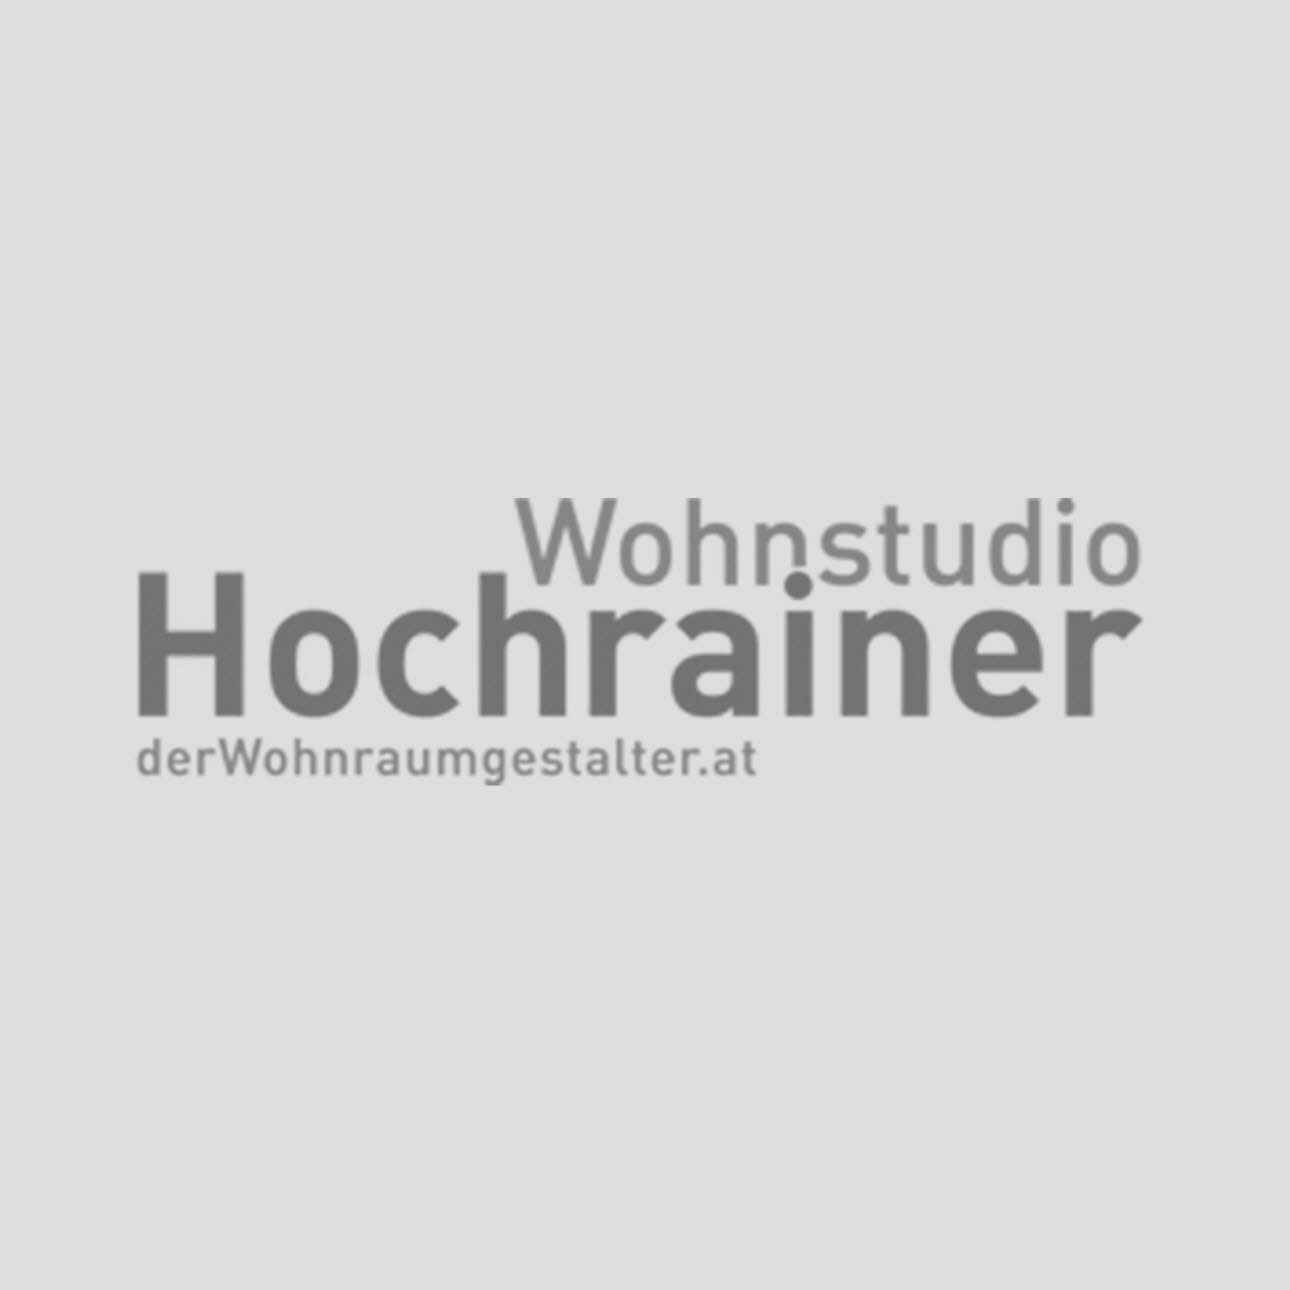 Flagship Partner Hochrainer